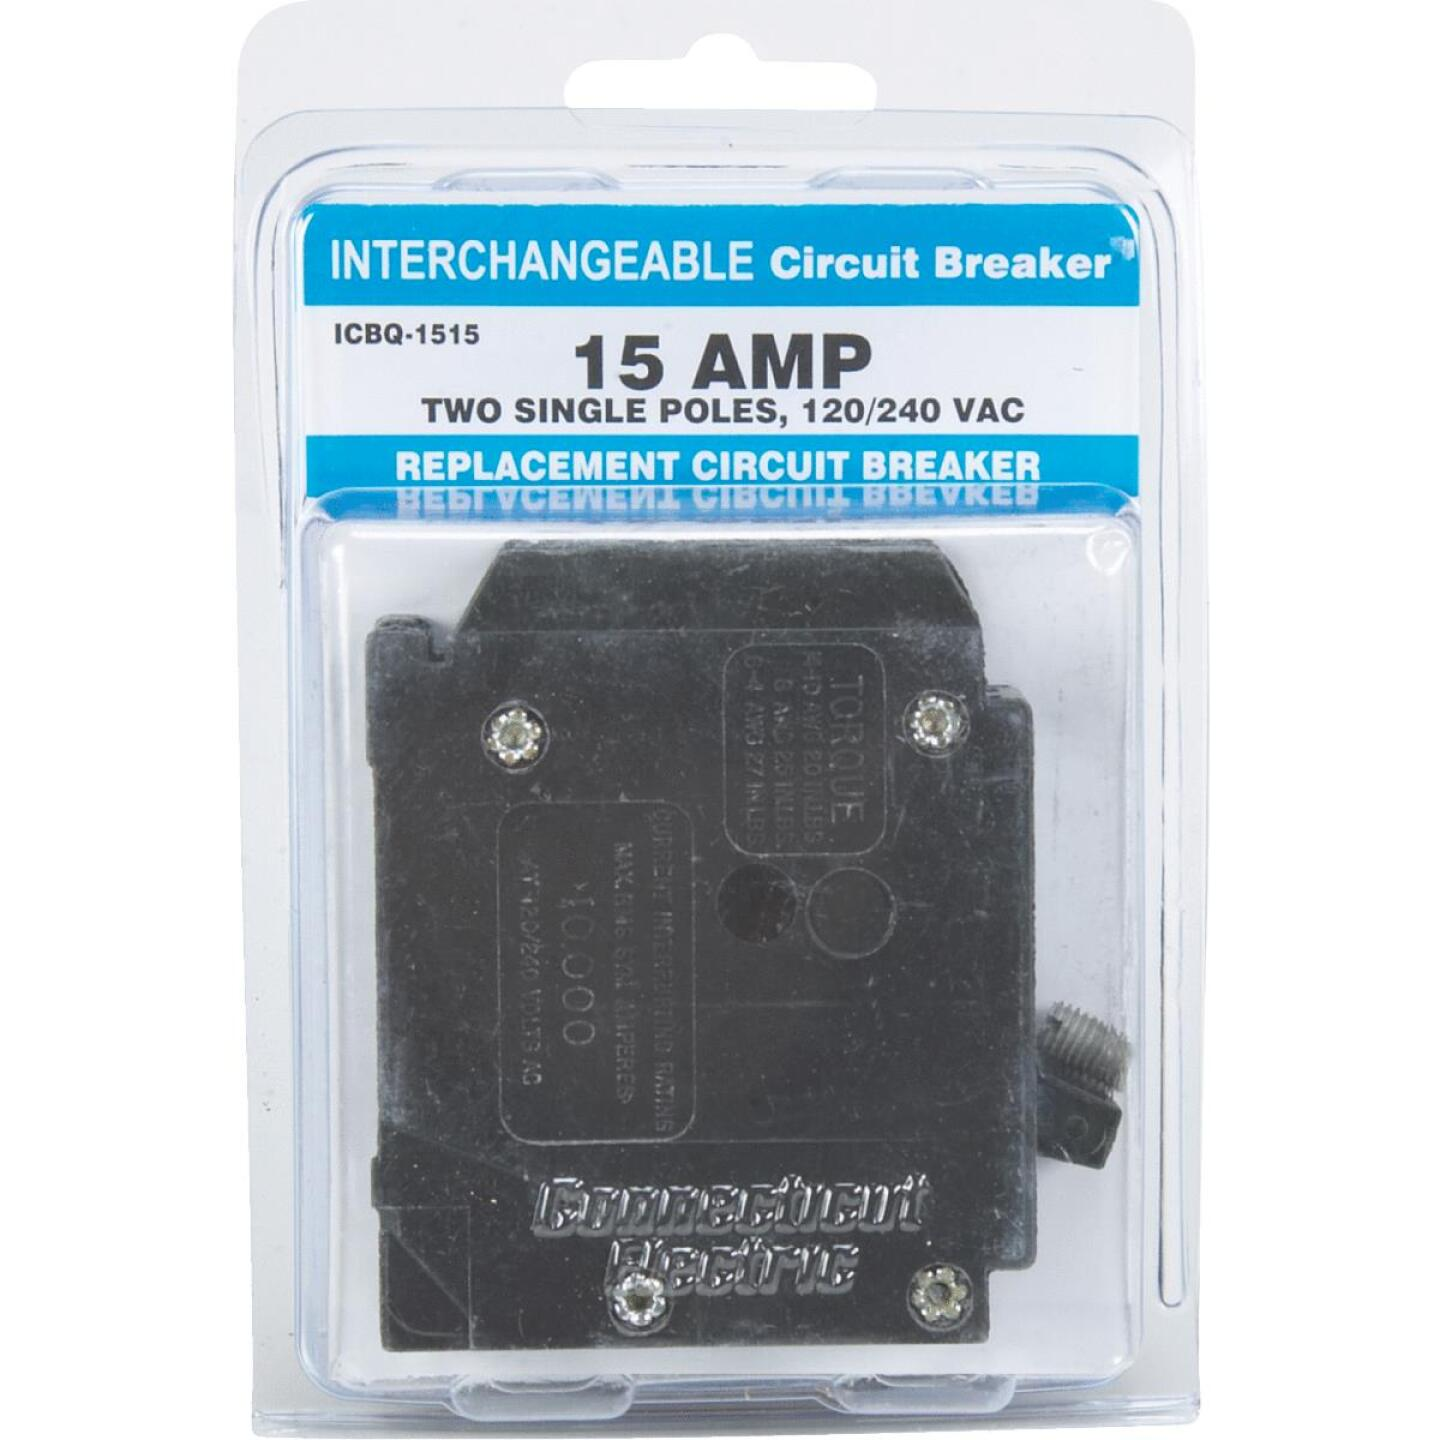 Connecticut Electric 15A/15A Twin Single-Pole Standard Trip Interchangeable Packaged Circuit Breaker Image 2